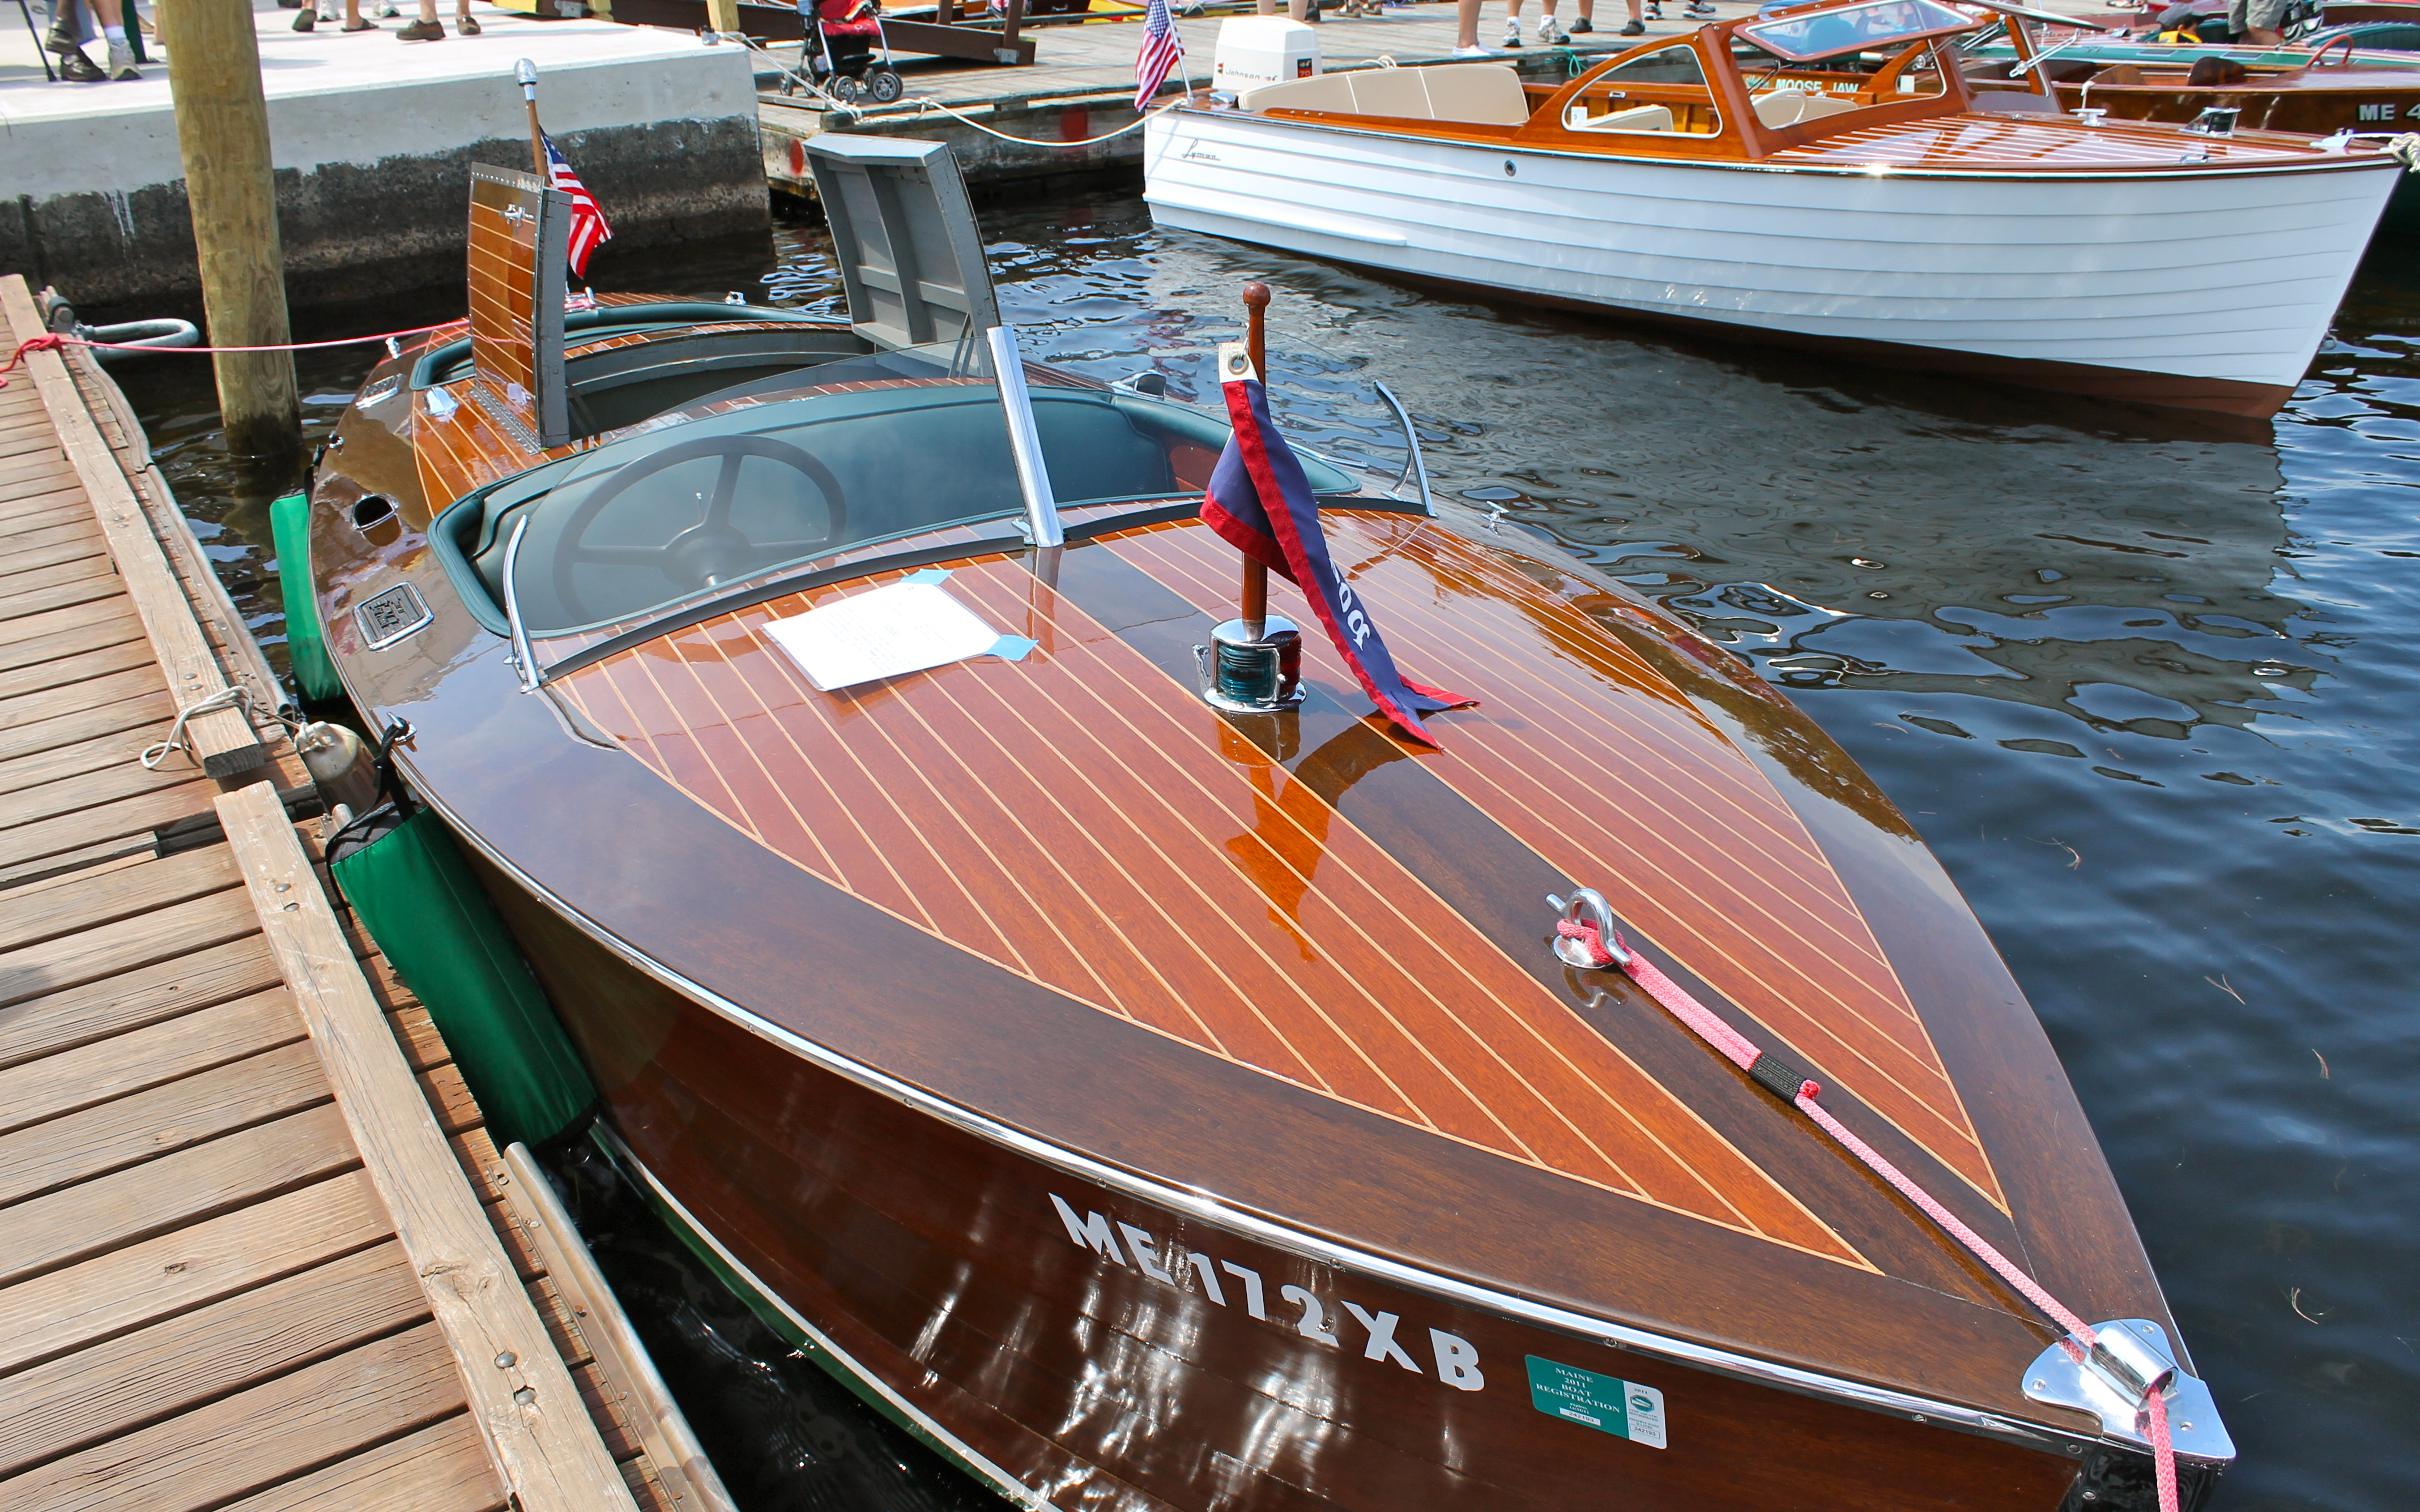 ... vintage wooden boats is truly amazing. Mr. ...